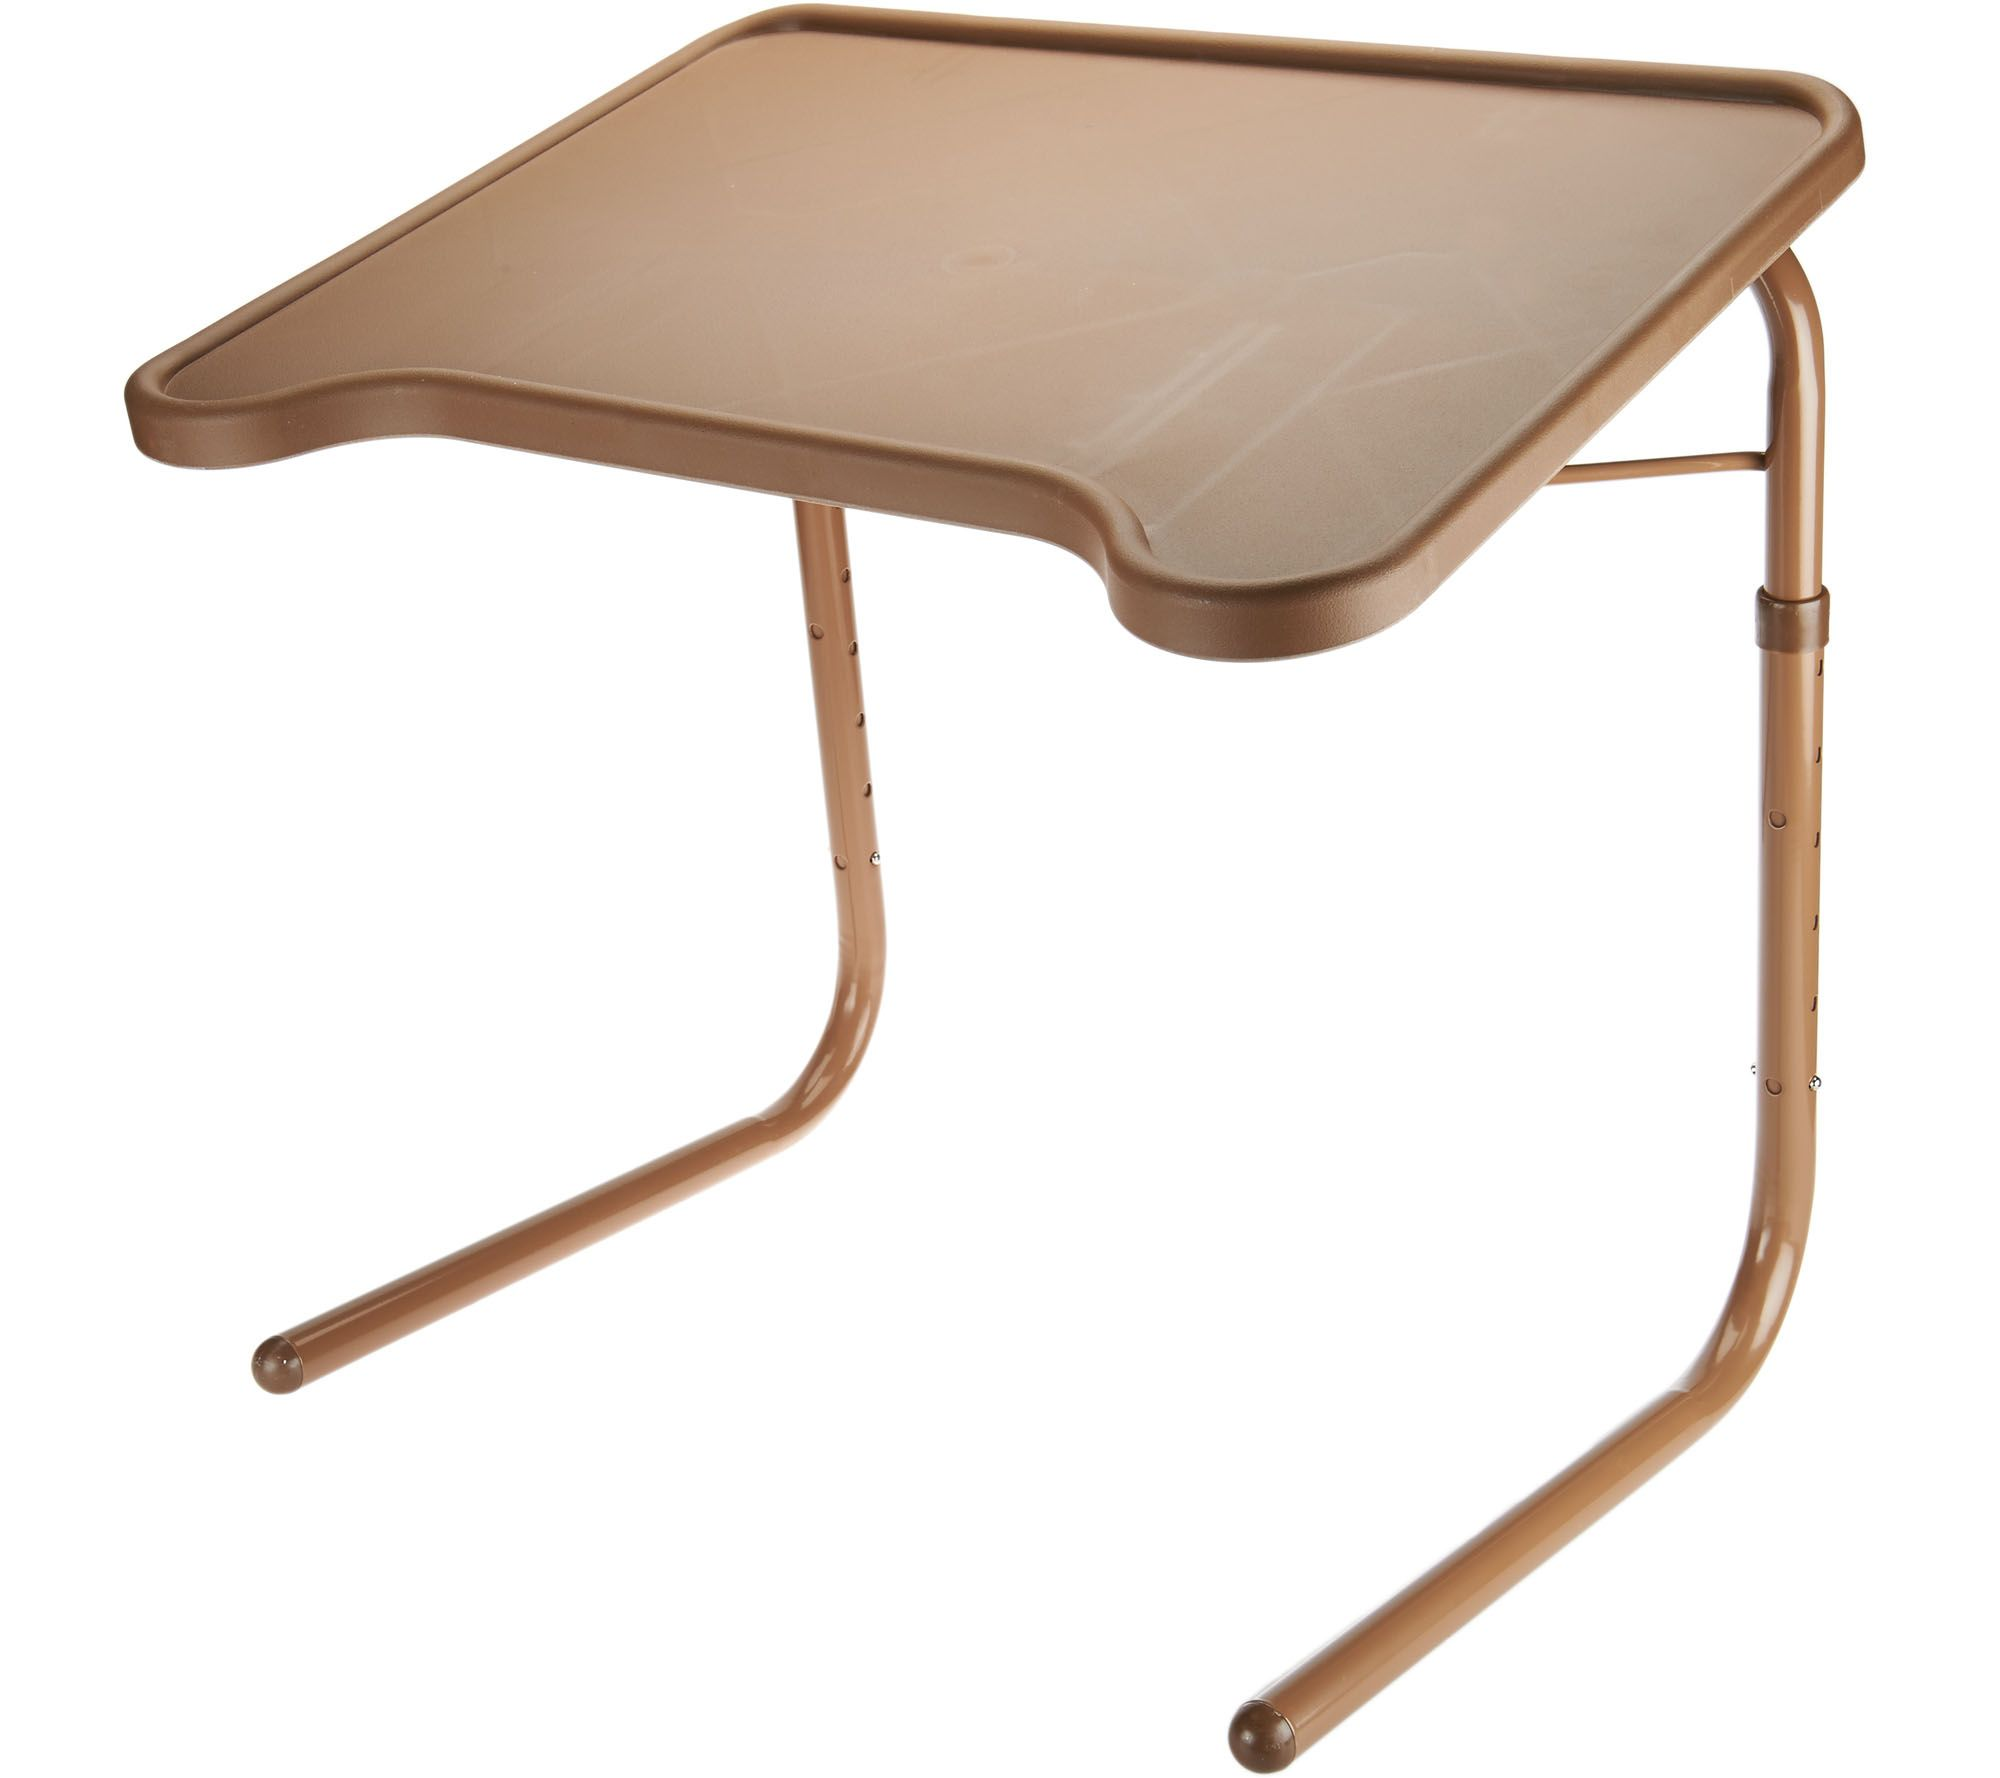 Home Accents Christmas Decorations Table Mate Classic Multipurpose Adjustable Folding Table